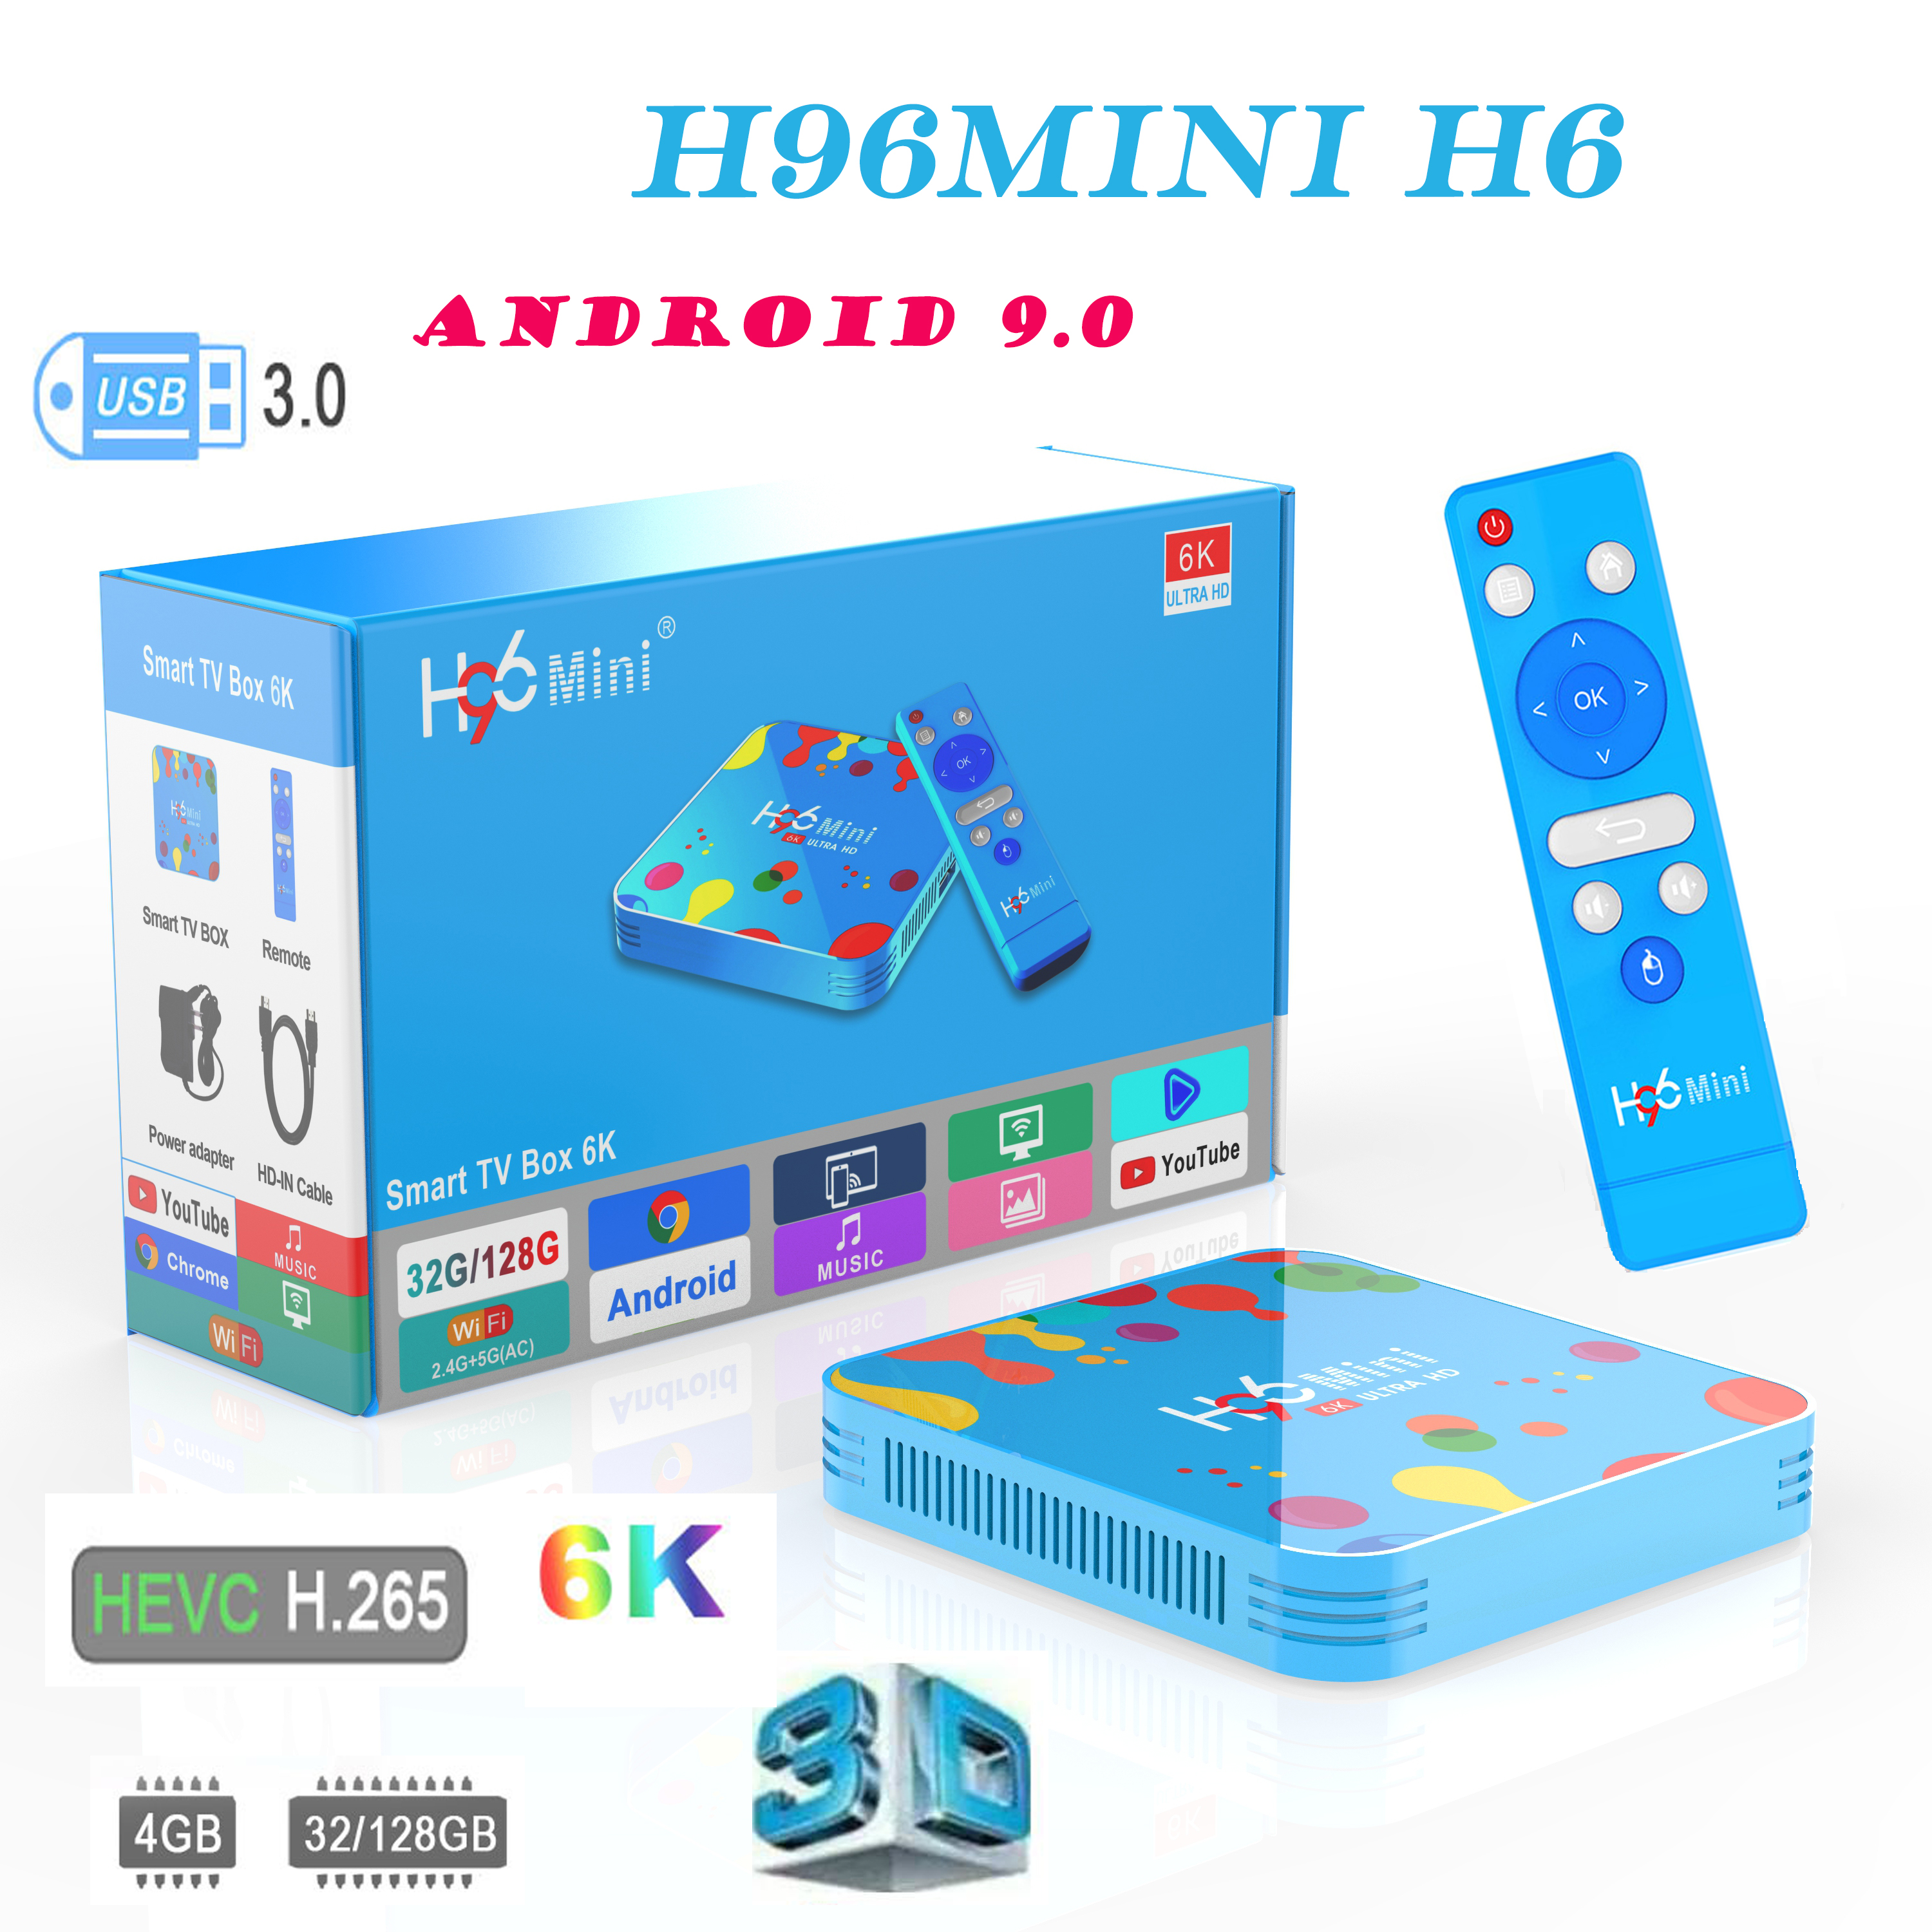 Smart console H96 MINI H6 Android 9 0 tv box 4G 32G 128G wifi 2 4G 5G 6K H 265 Smart TV Set Top Box support iptv Italy Spain in Set top Boxes from Consumer Electronics